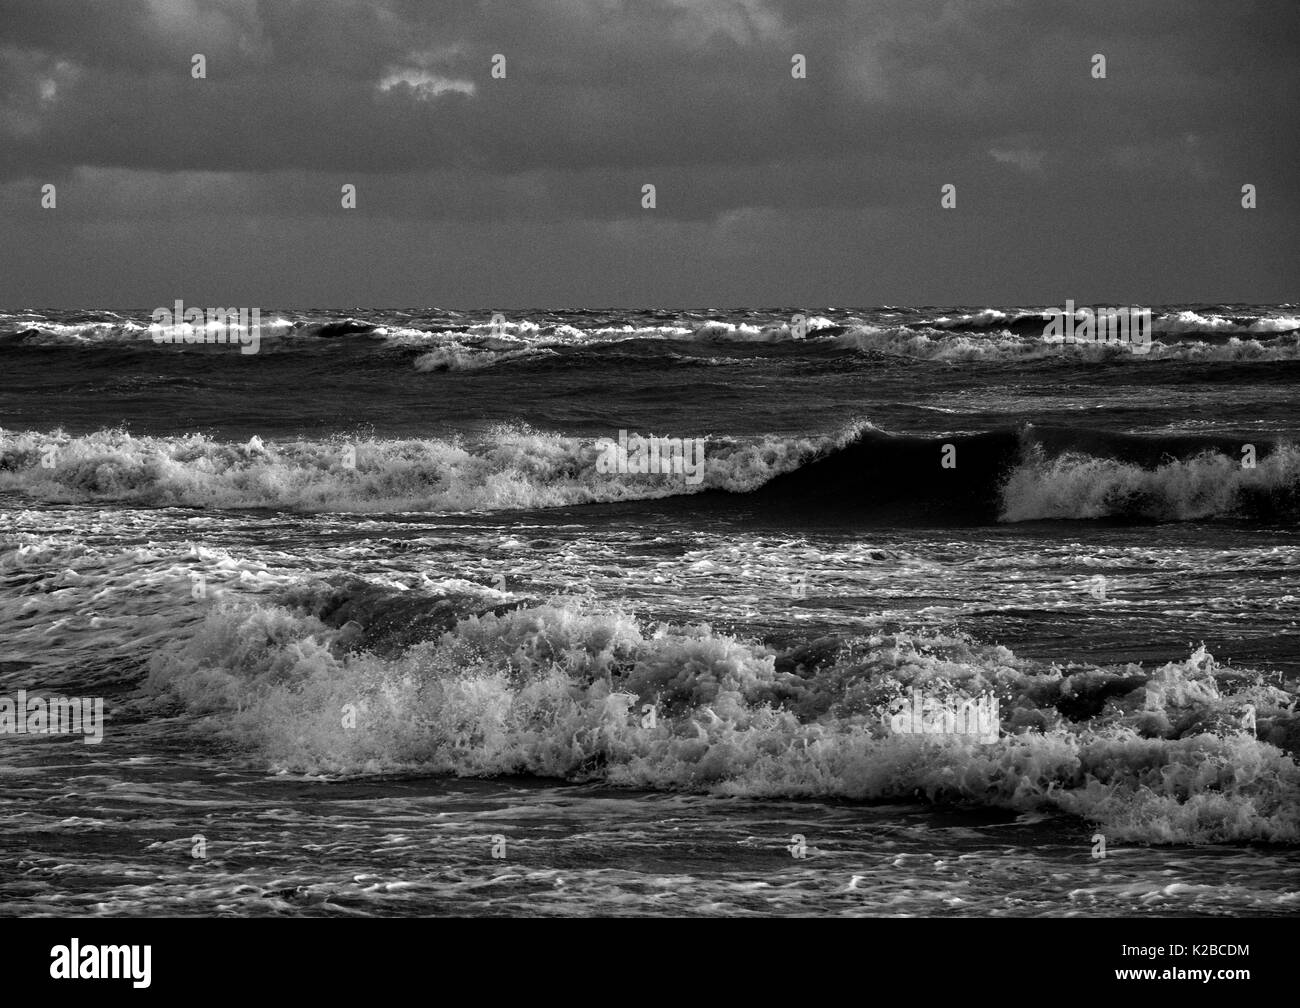 AJAXNETPHOTO. WORTHING, ENGLAND. - STORMY SEAS ON THE SOUTH COAST AFTER AUTUMNAL GALES. PHOTO;JONATHAN EASTLAND/AJAX REF:P78_132810_124 - Stock Image